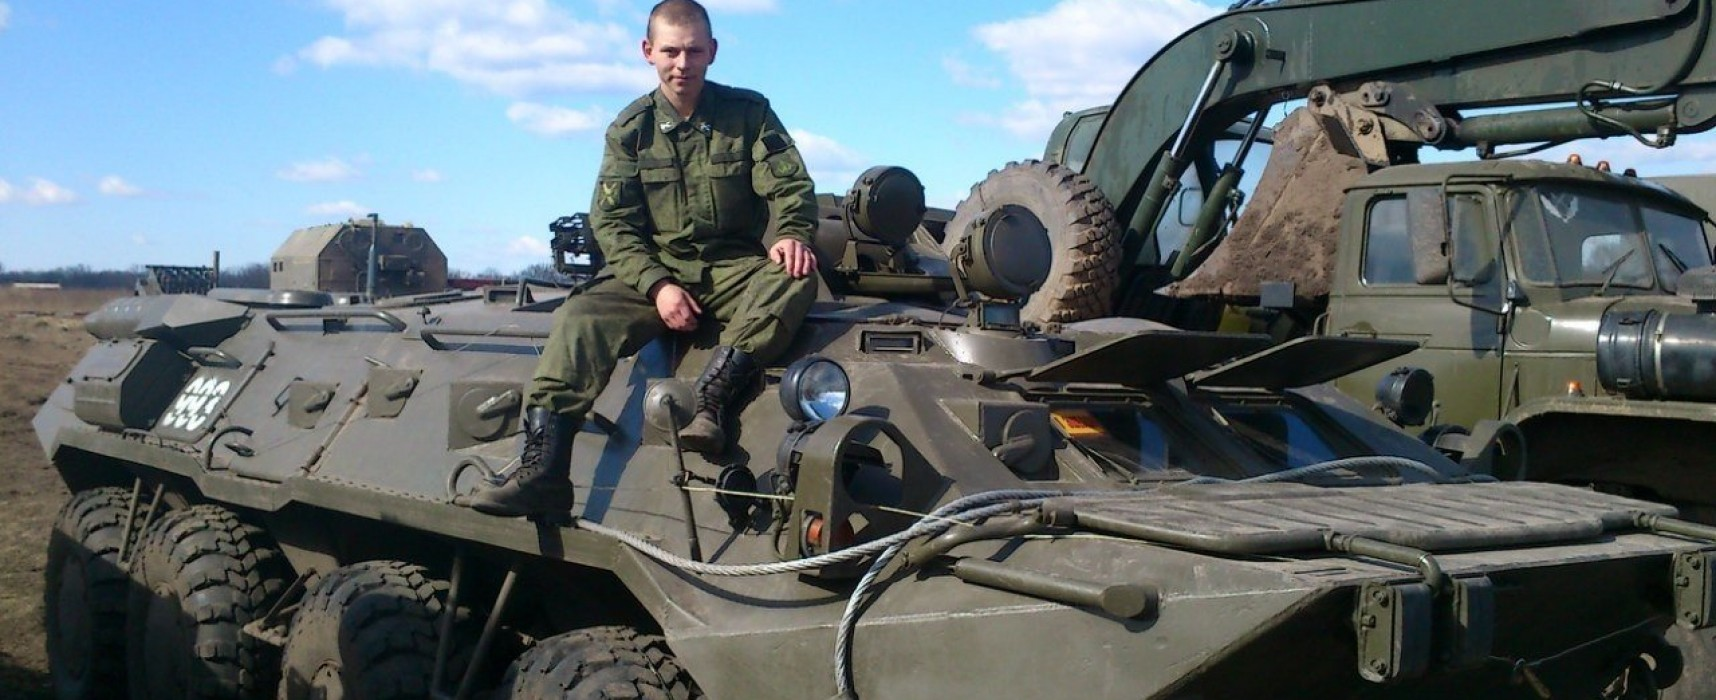 Russia's Second Invasion of Donbas is Well-Orchestrated